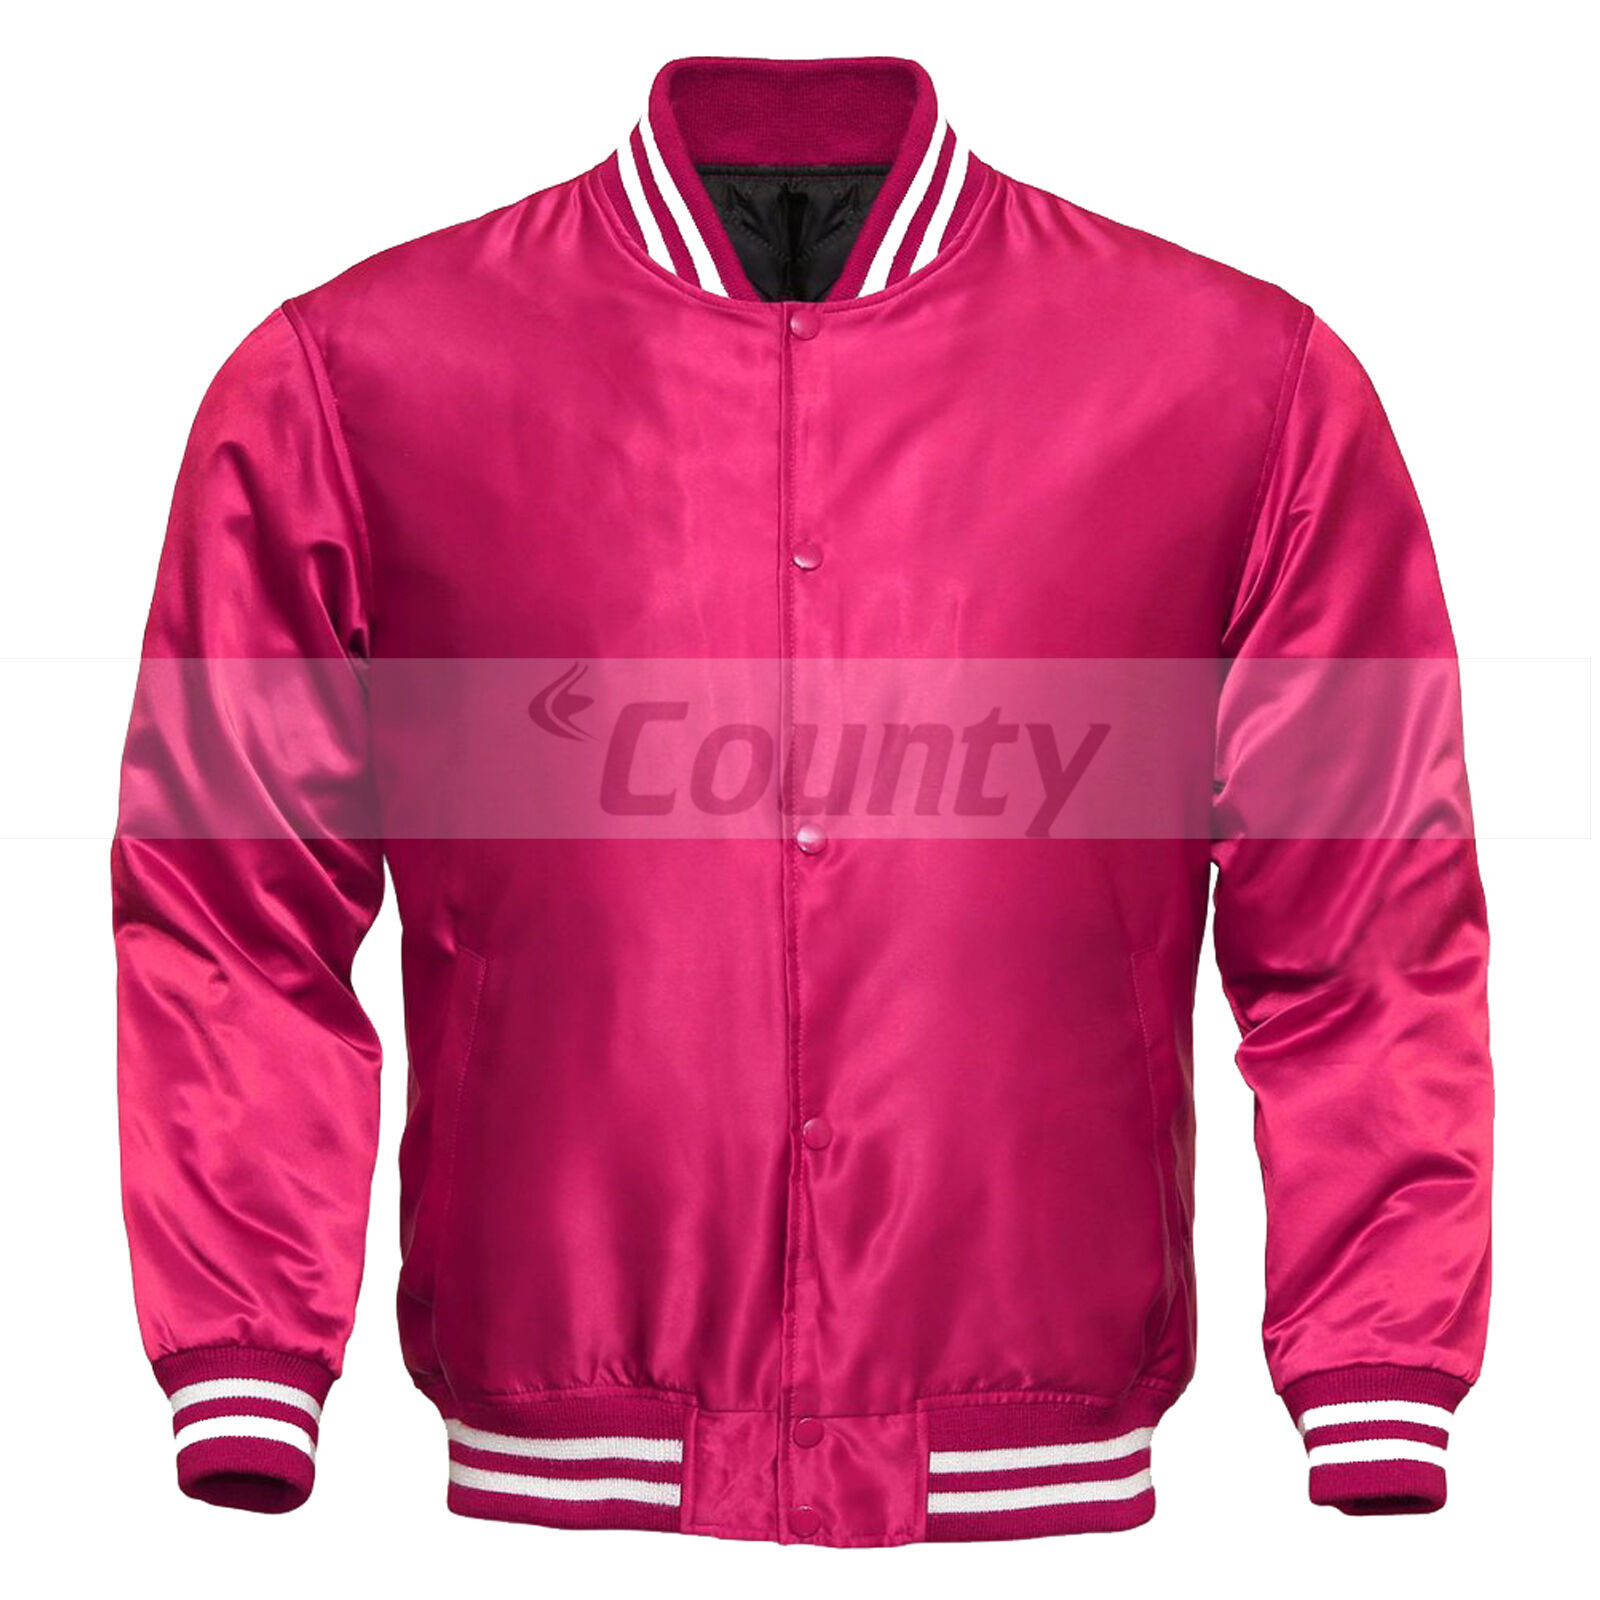 Primary image for New Letterman Baseball College Varsity Bomber Sports Wear Jacket Hot Pink Satin